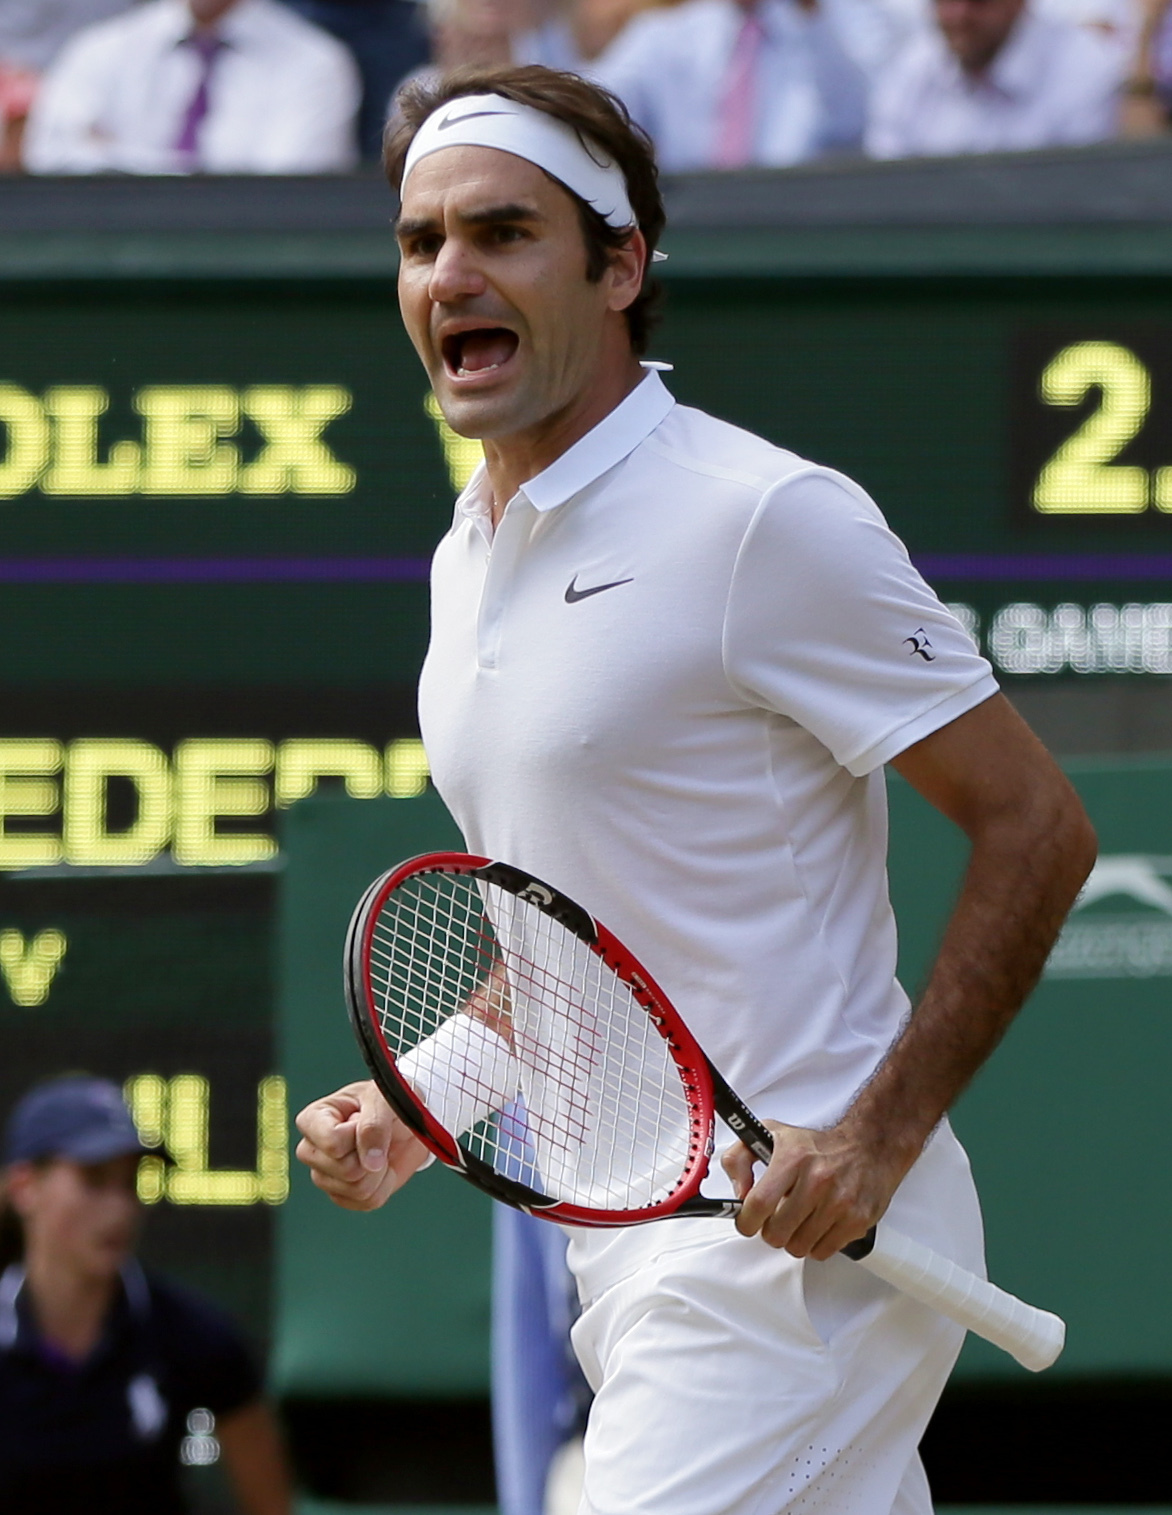 Roger Federer of Switzerland celebrates a point against Marin Cilic of Croatia during their men's singles match on day ten of the Wimbledon Tennis Championships in London, Wednesday, July 6, 2016. (AP Photo/Tim Ireland)